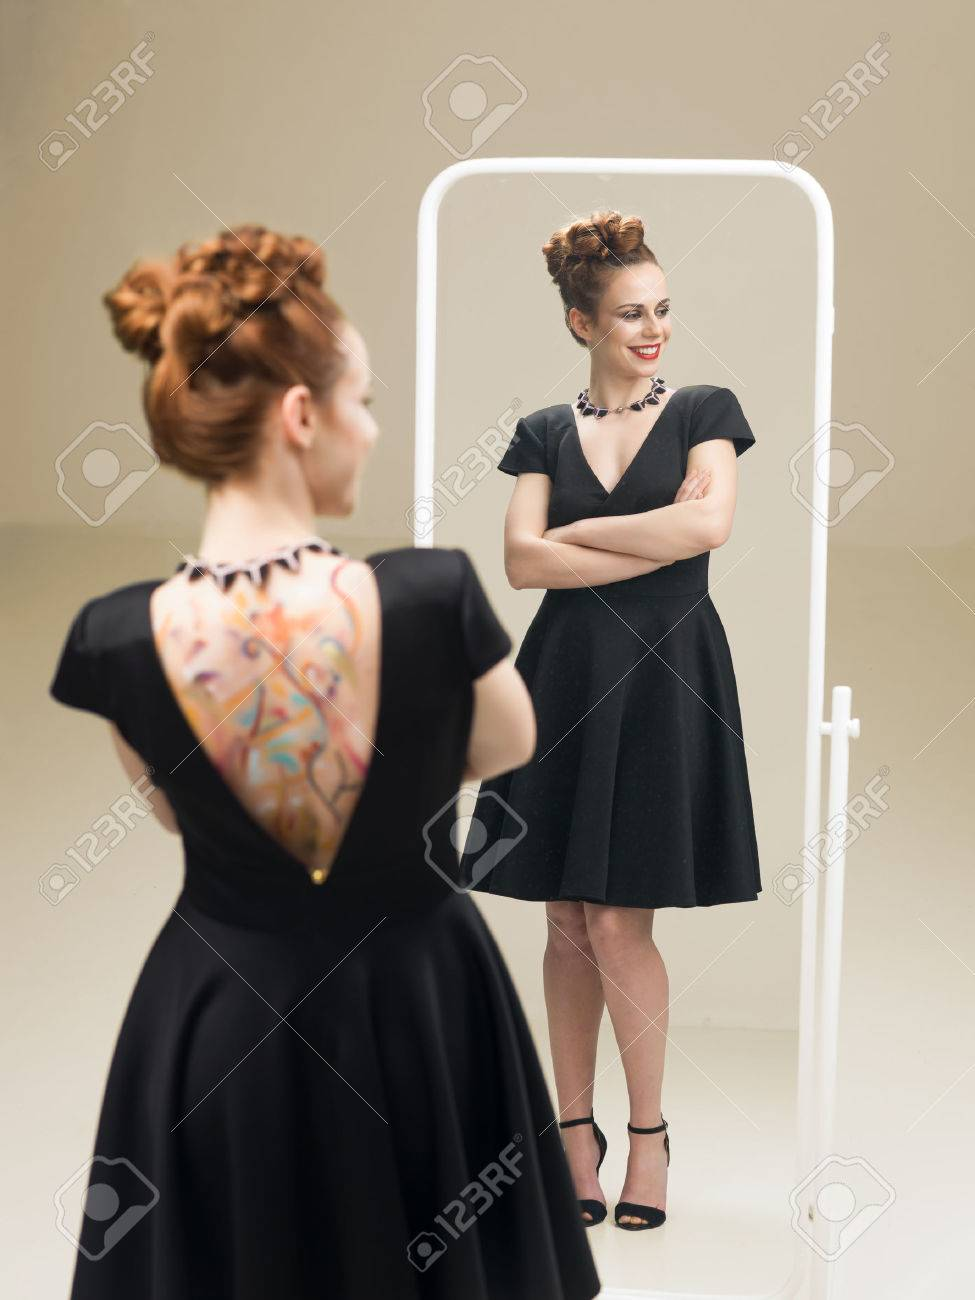 1fd982f6cac beautiful red headed woman in fancy black dress standing in front of mirror  looking happy Stock